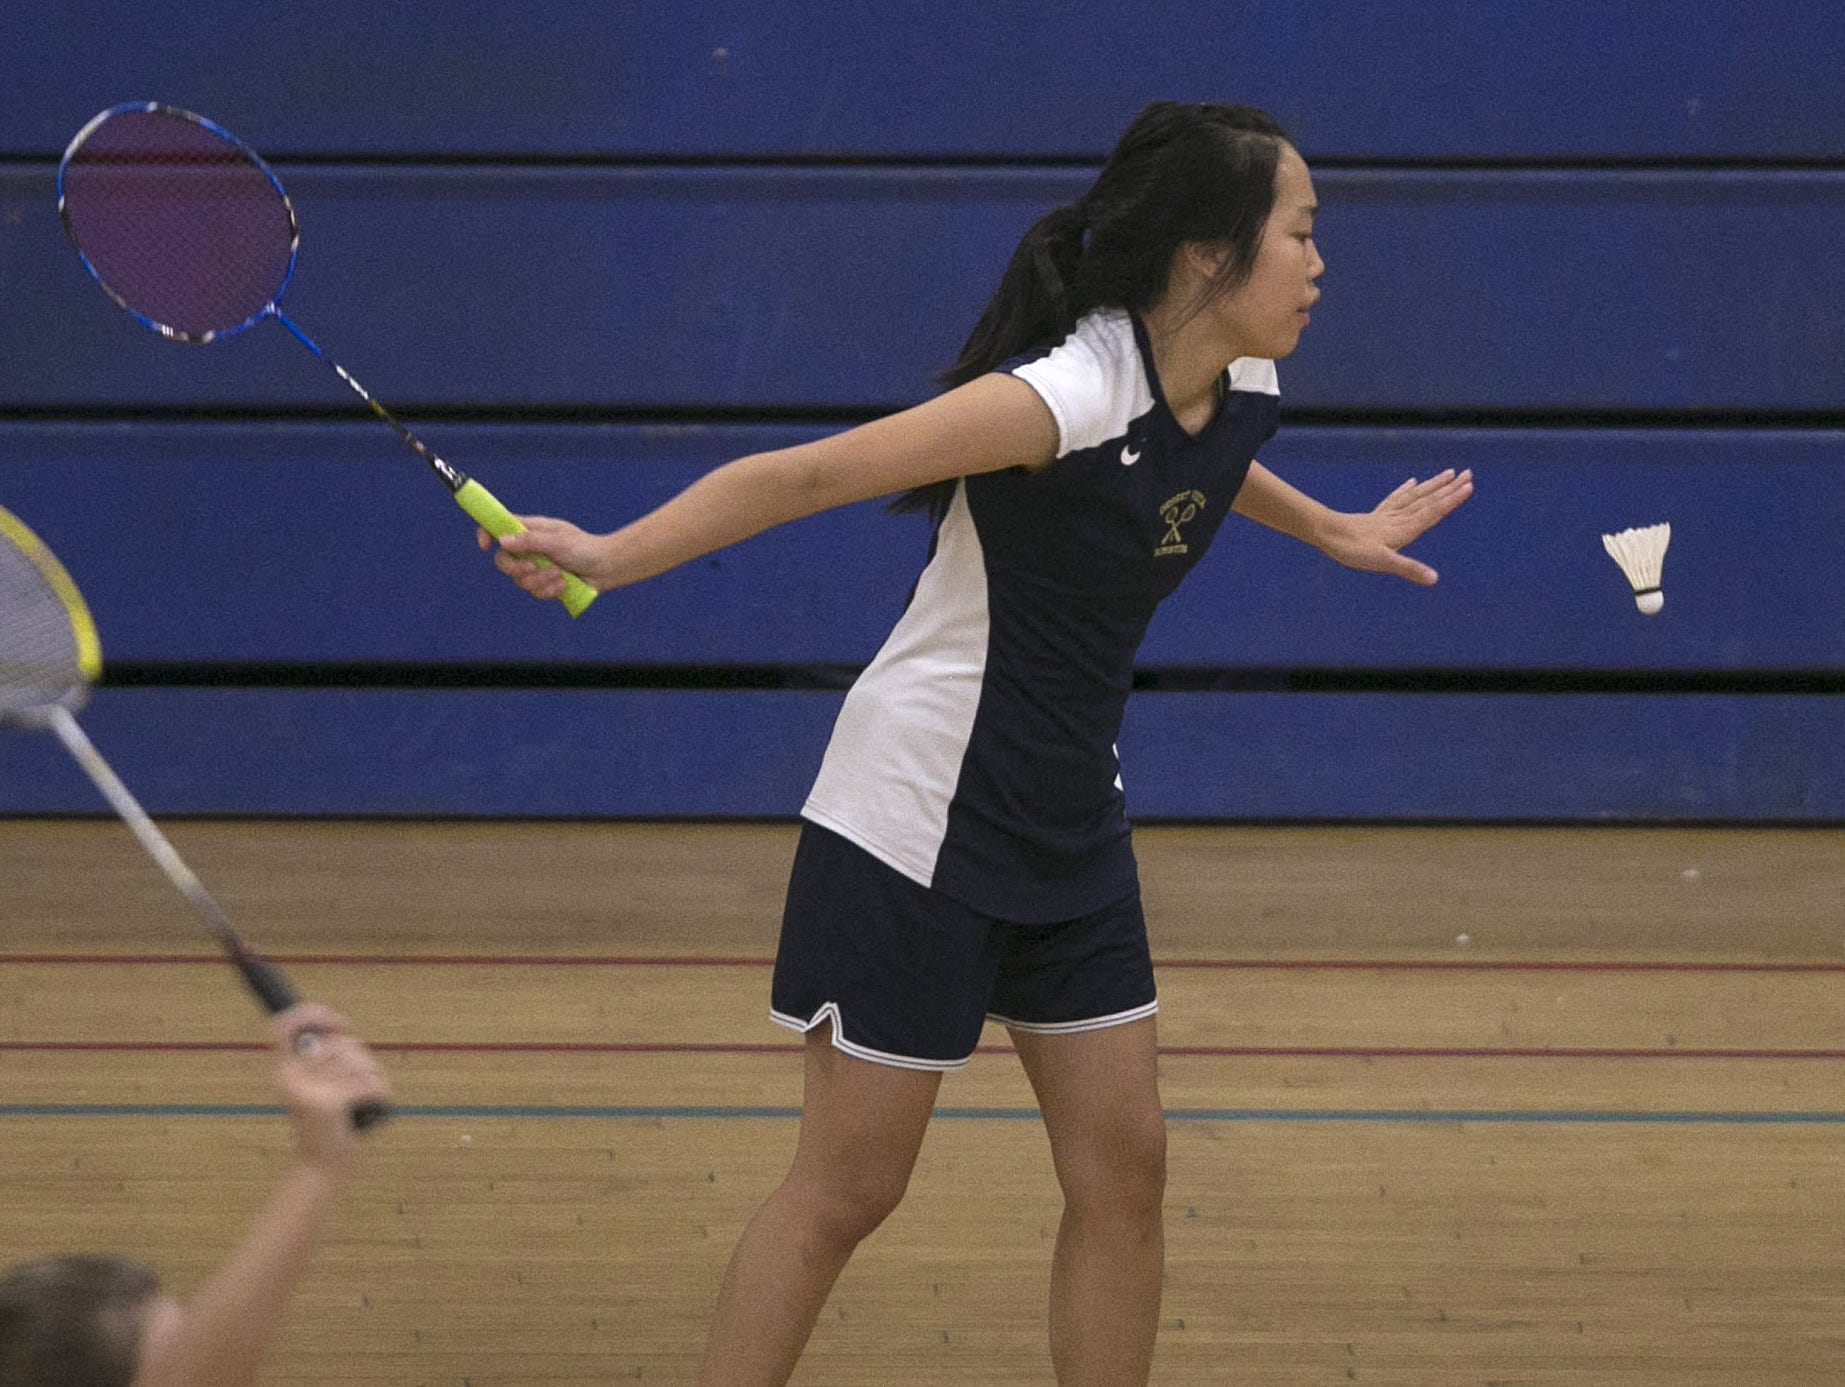 Phoenix Desert Vista senior Karen Guo will attempt to match her performance from 2014, when she went undefeated and cruised to the championship.